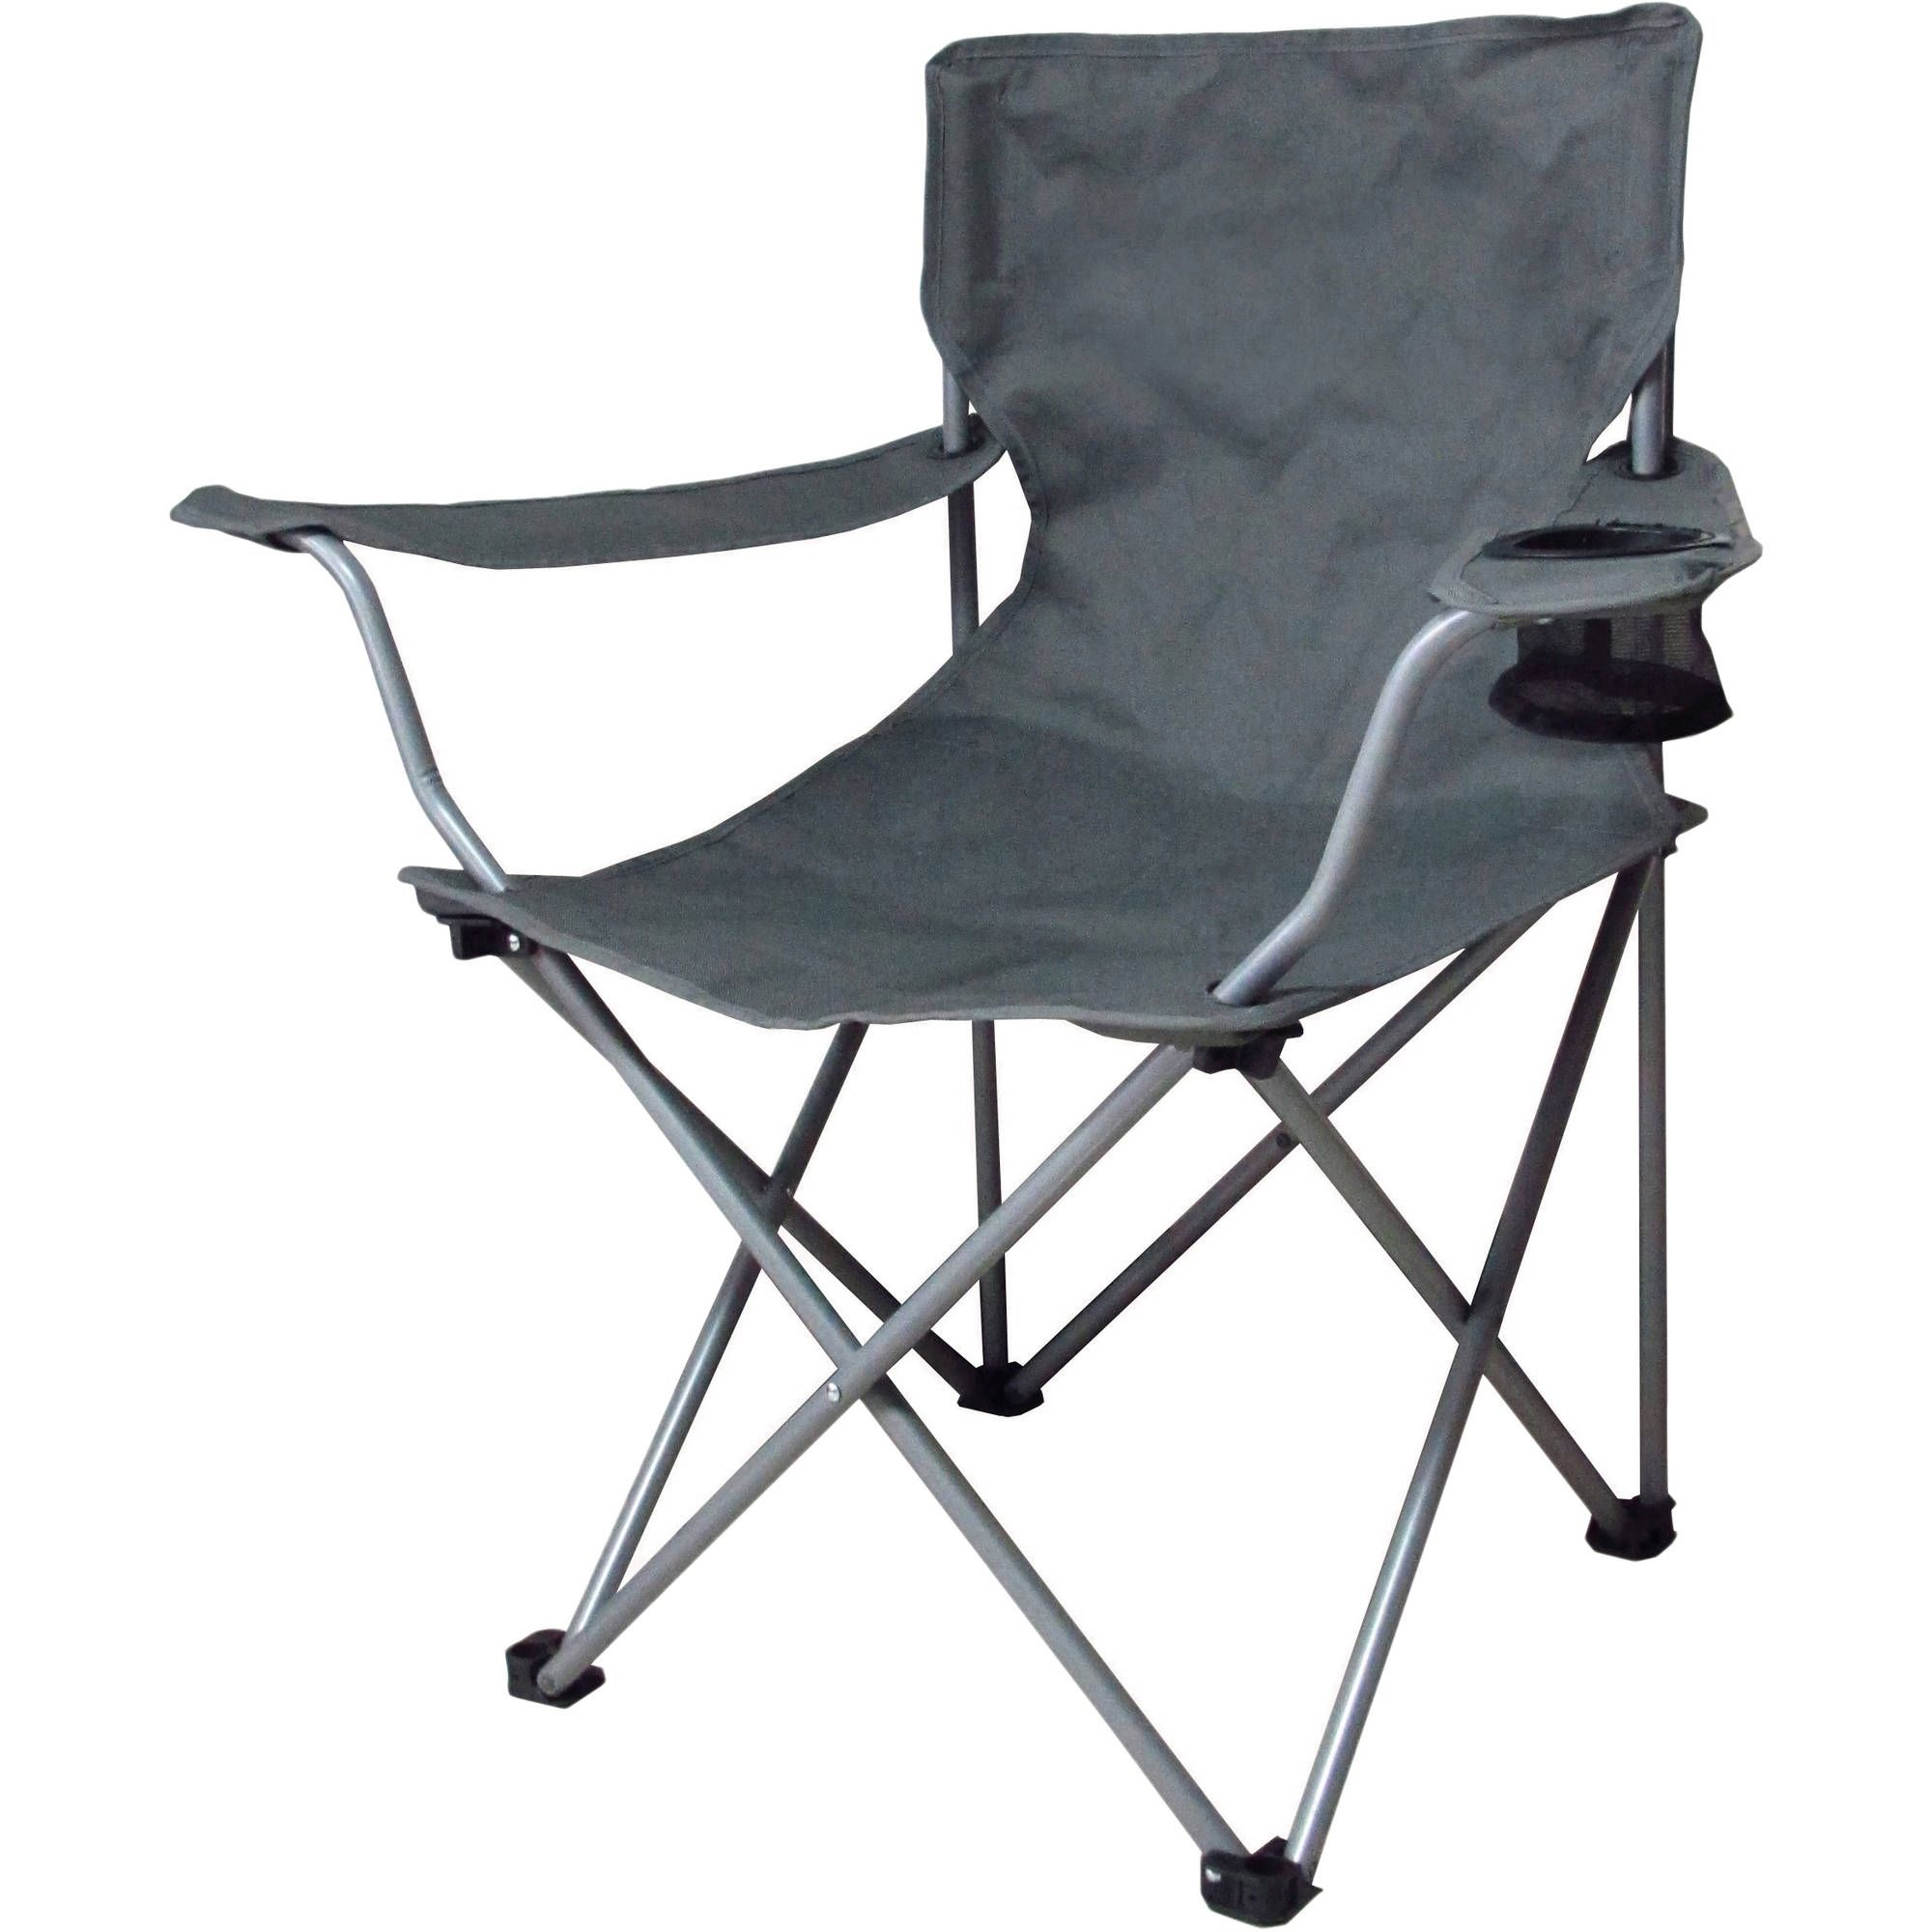 Small Fold Up Chair Small Fold Up Camping Chair Folding Chairs Pinterest Camping